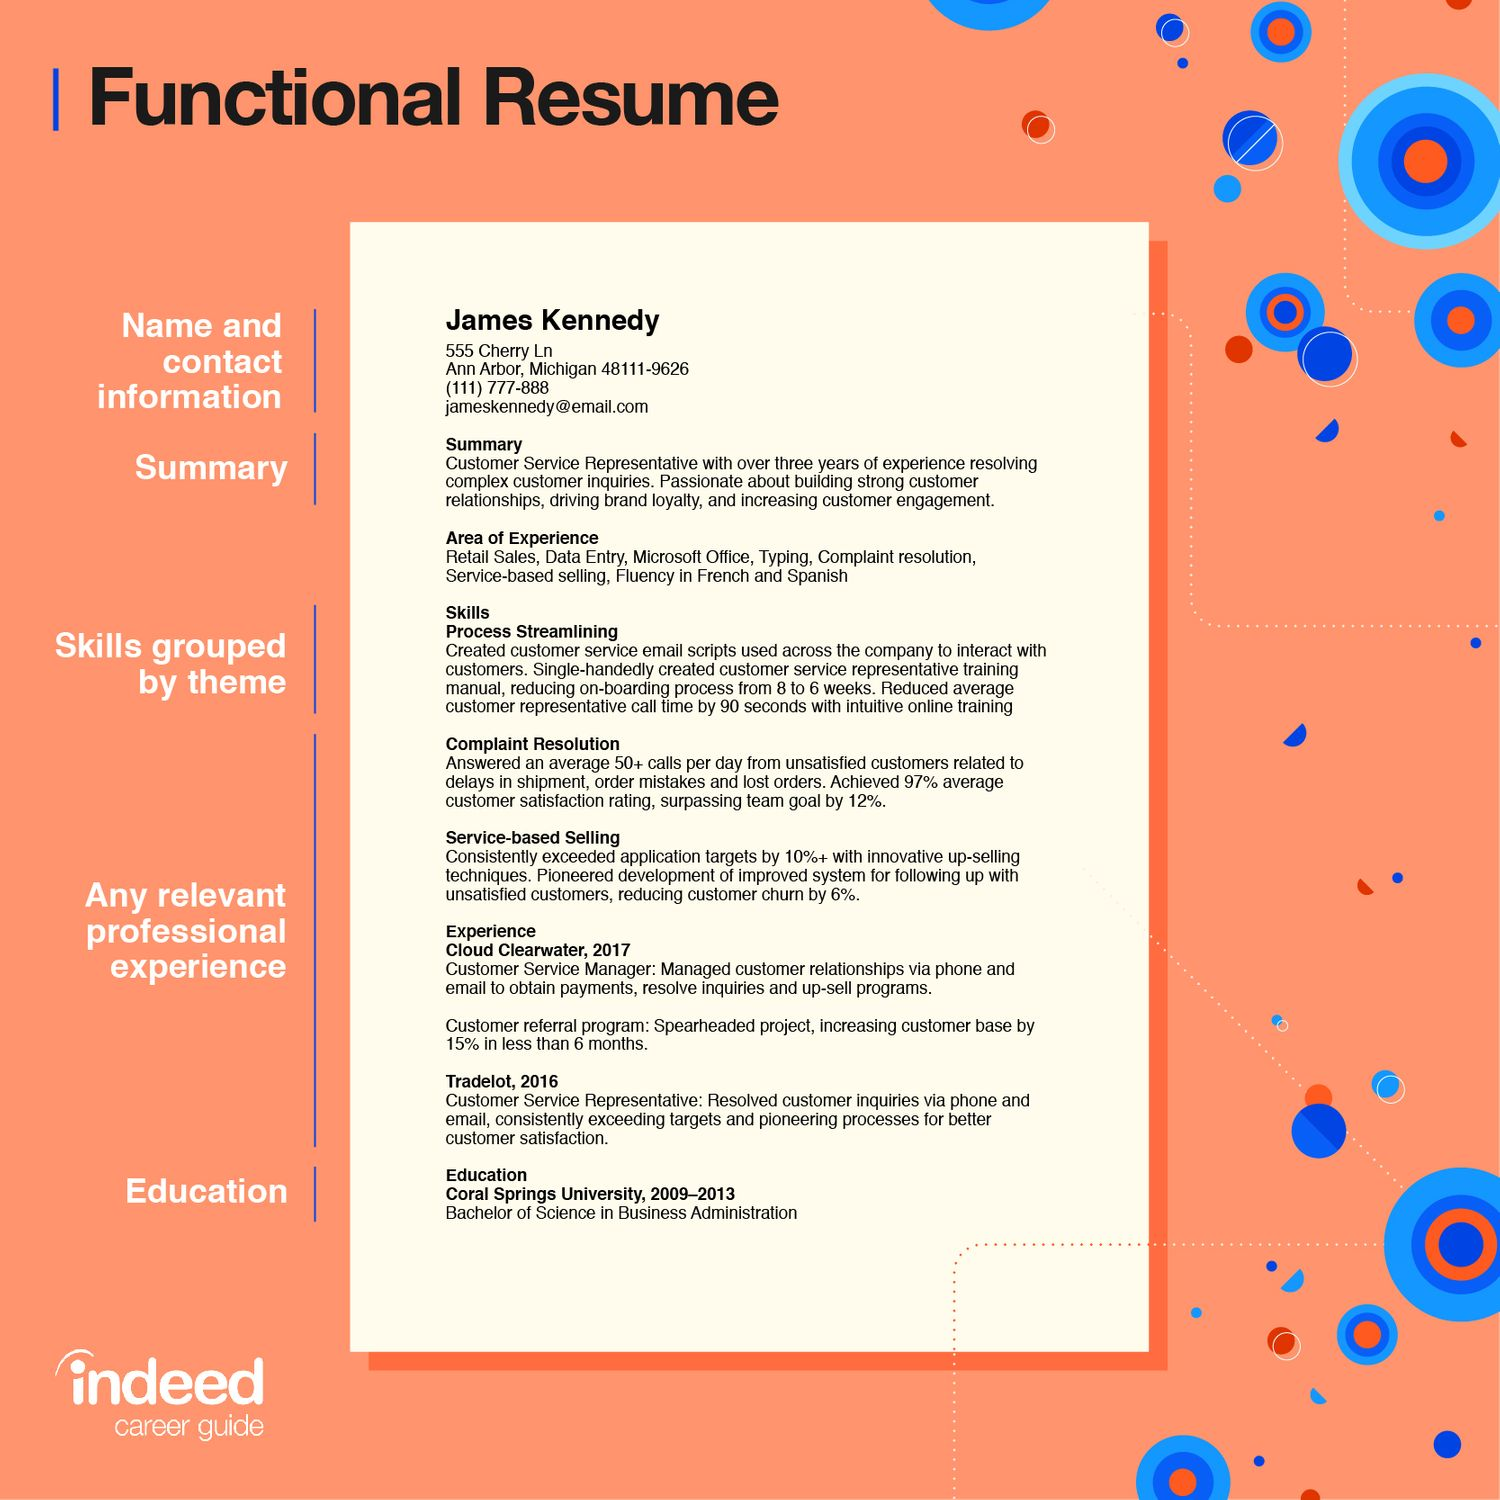 functional resume definition tips and examples indeed education portion of resized Resume Education Portion Of Resume